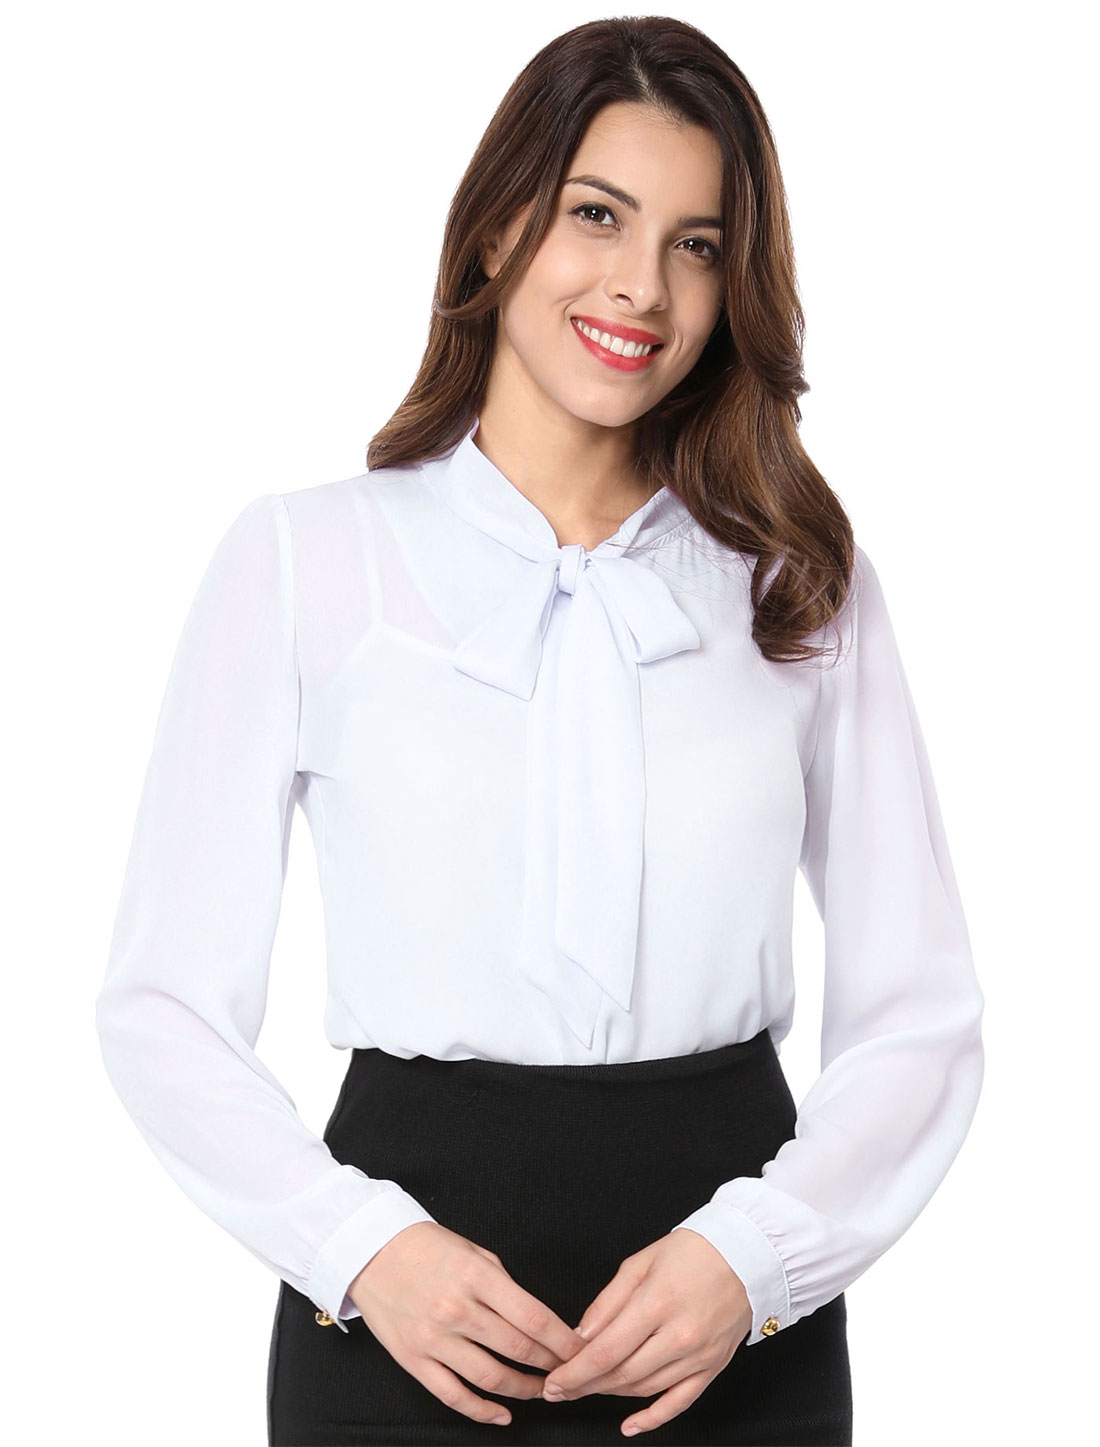 Lady Chic Self-Tie Bowknot Stand Collar Pure White Casual Blouse L